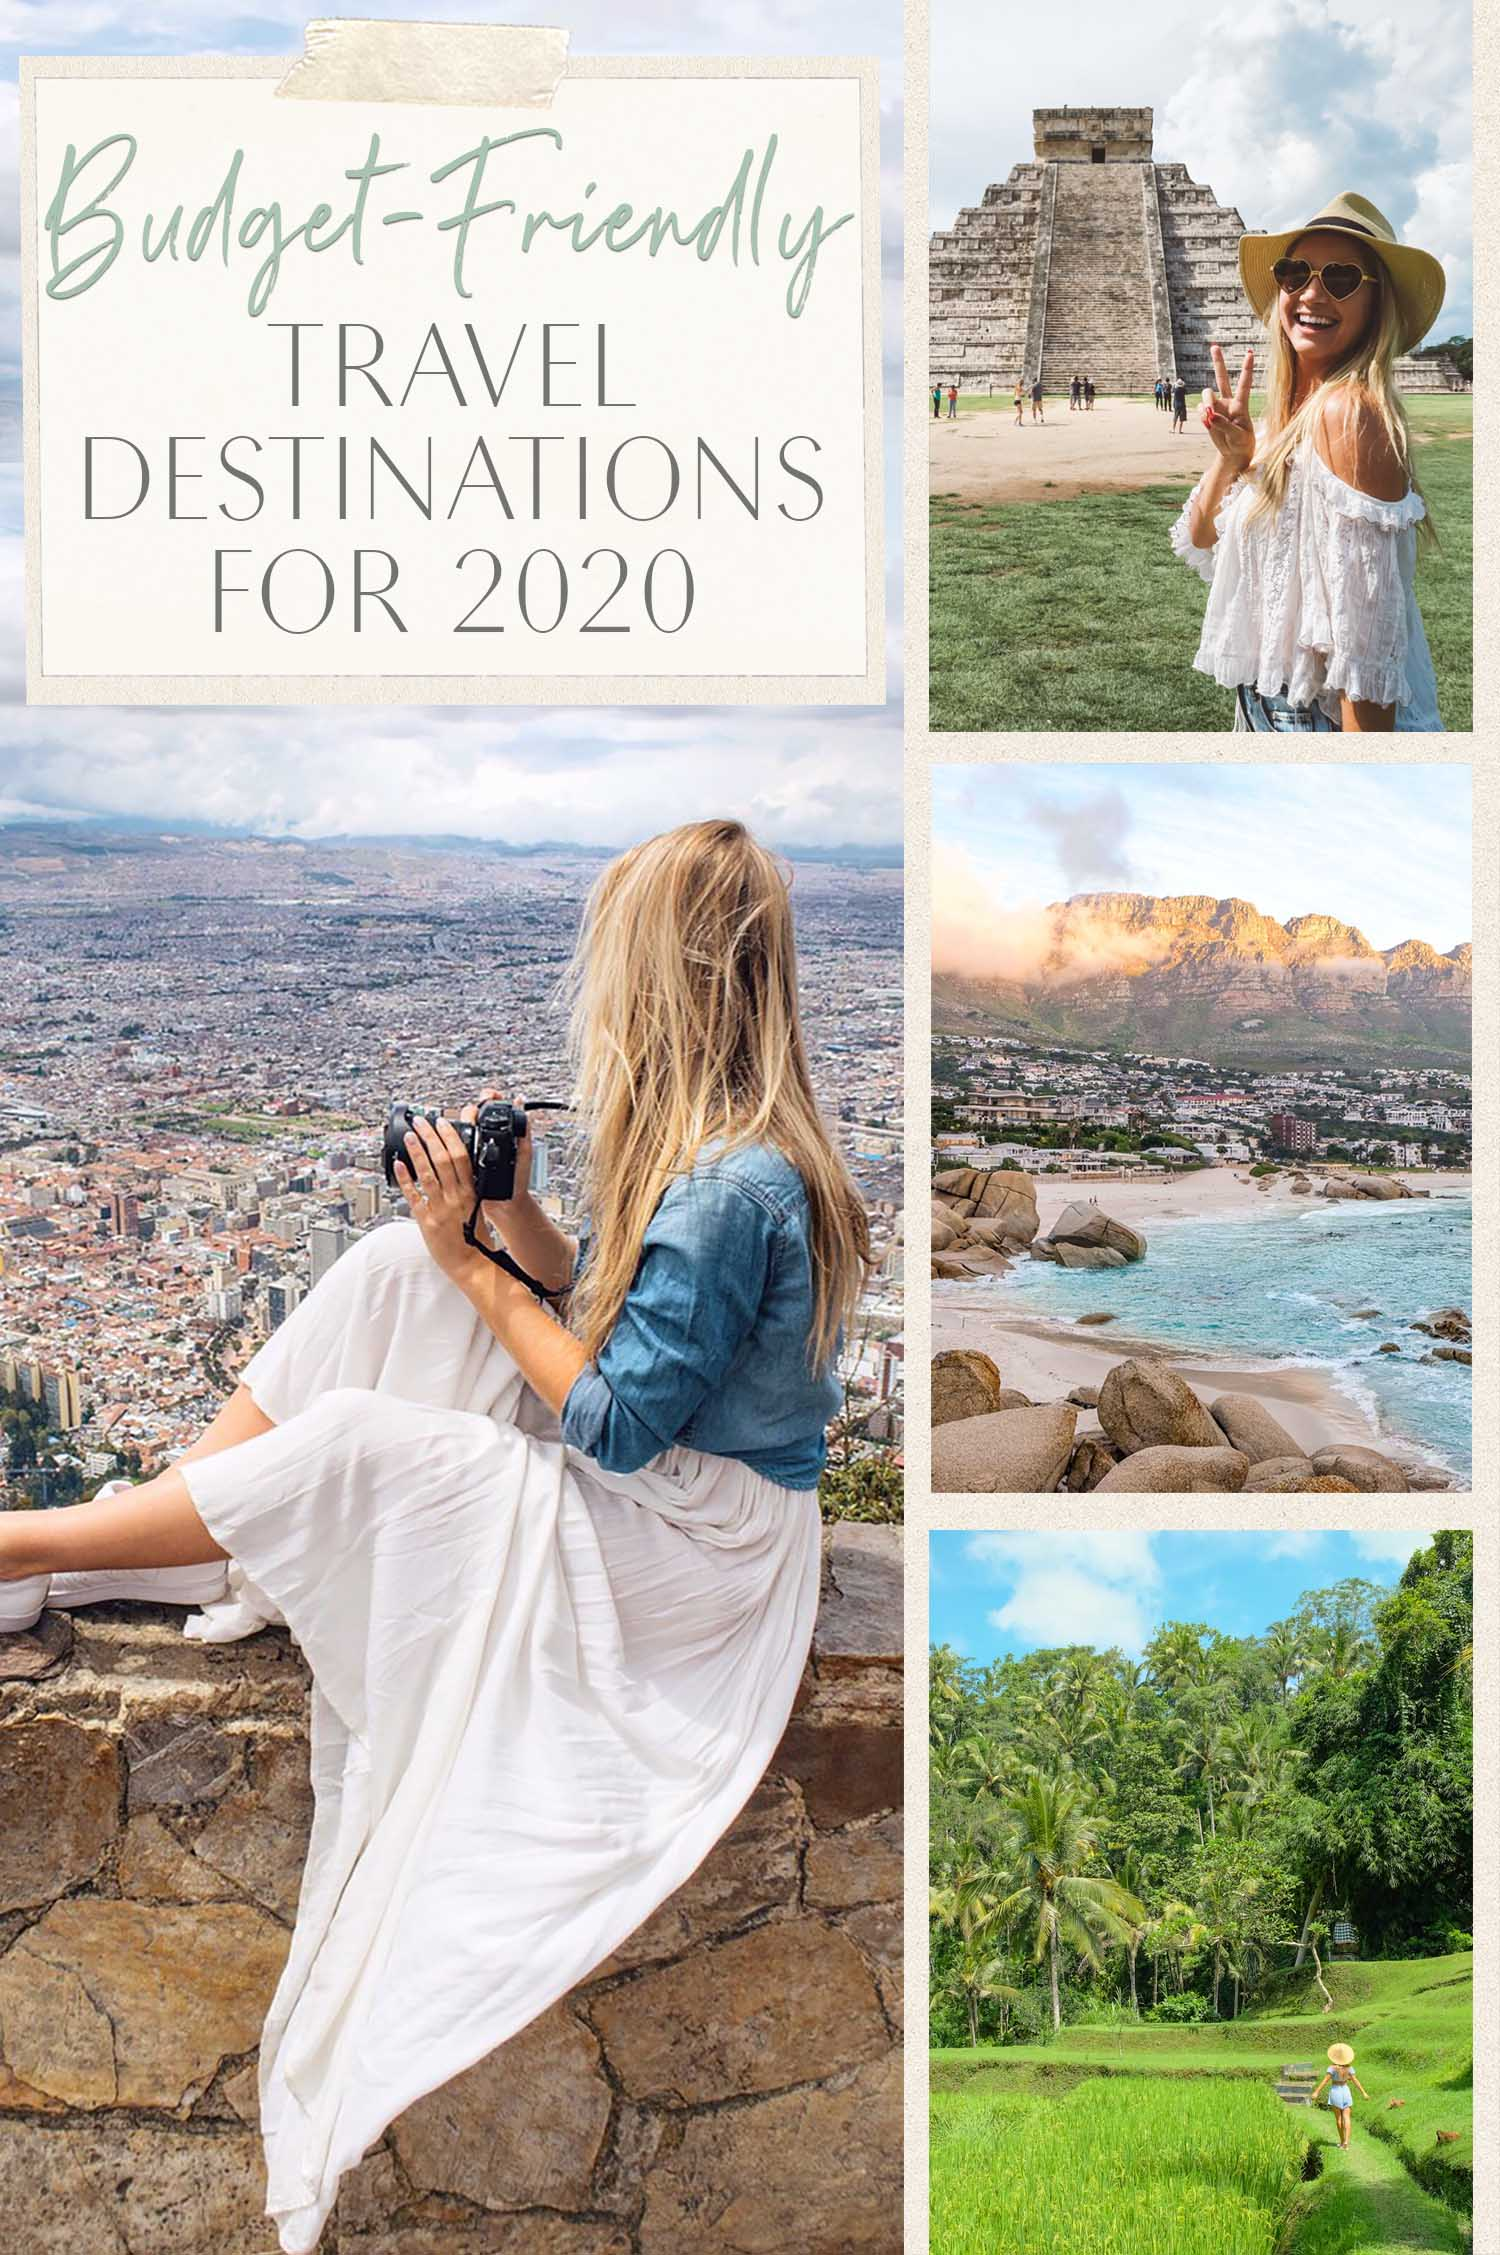 2Budget Friendly Travel Destinations 2020